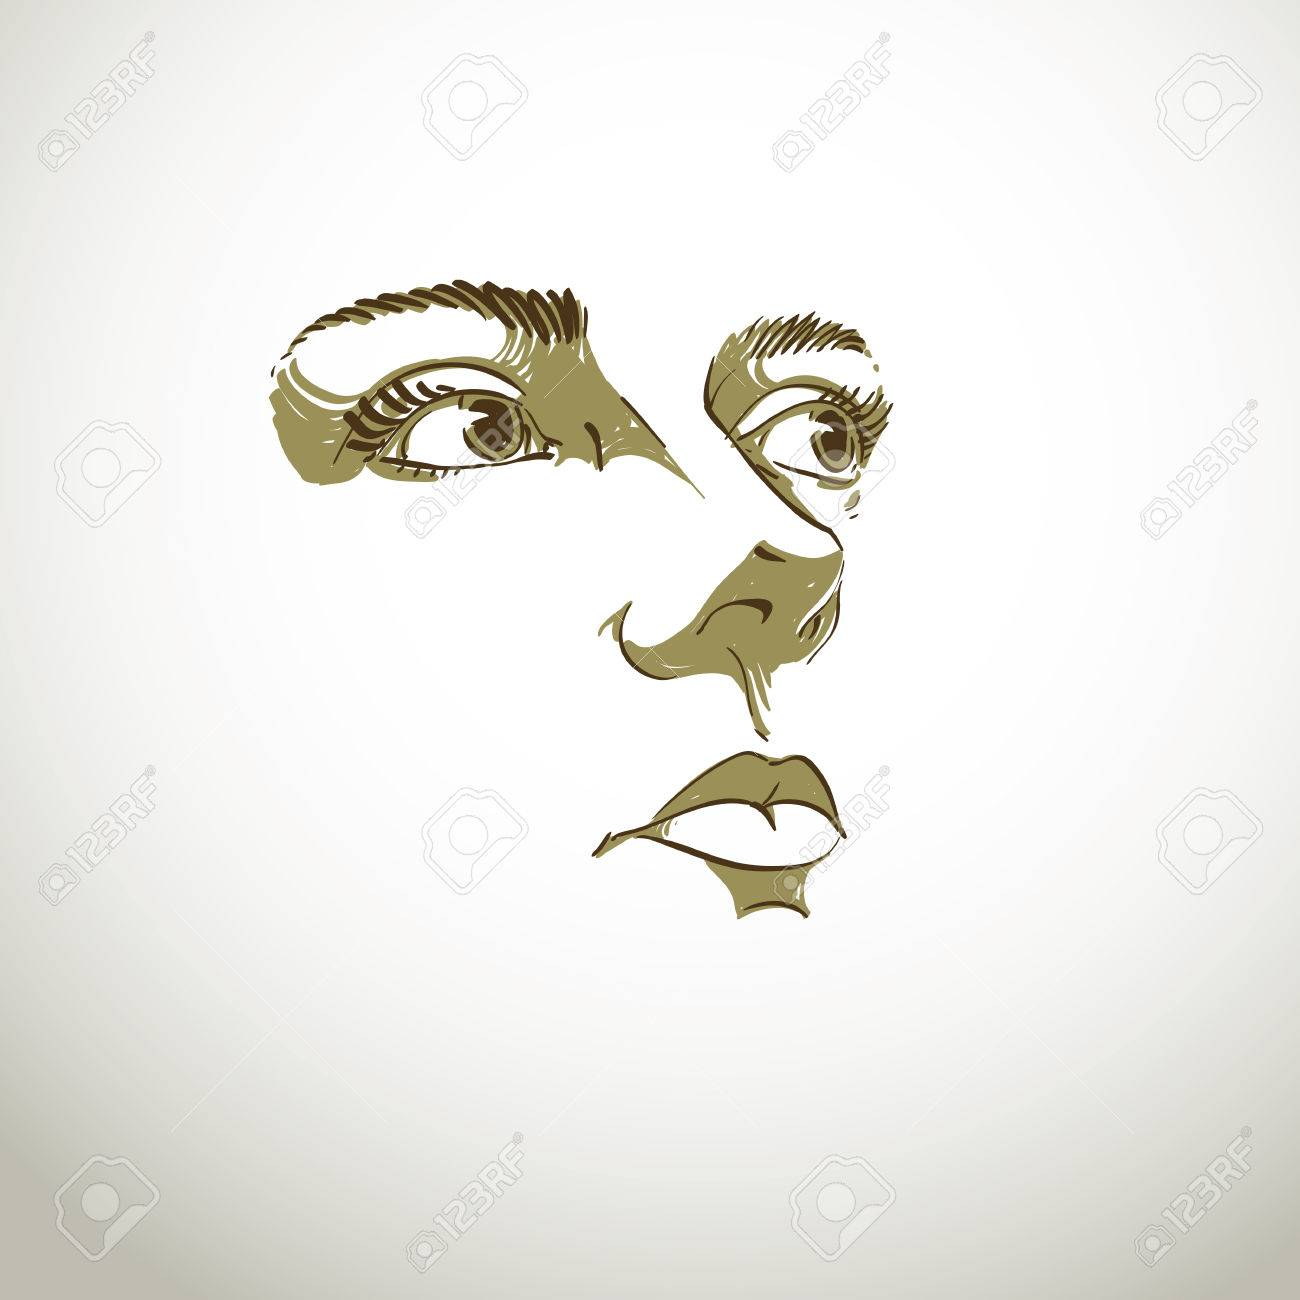 Black and white illustration of lady face, delicate visage features. Eyes and lips of peaceful woman expressing positive emotions. - 44757615